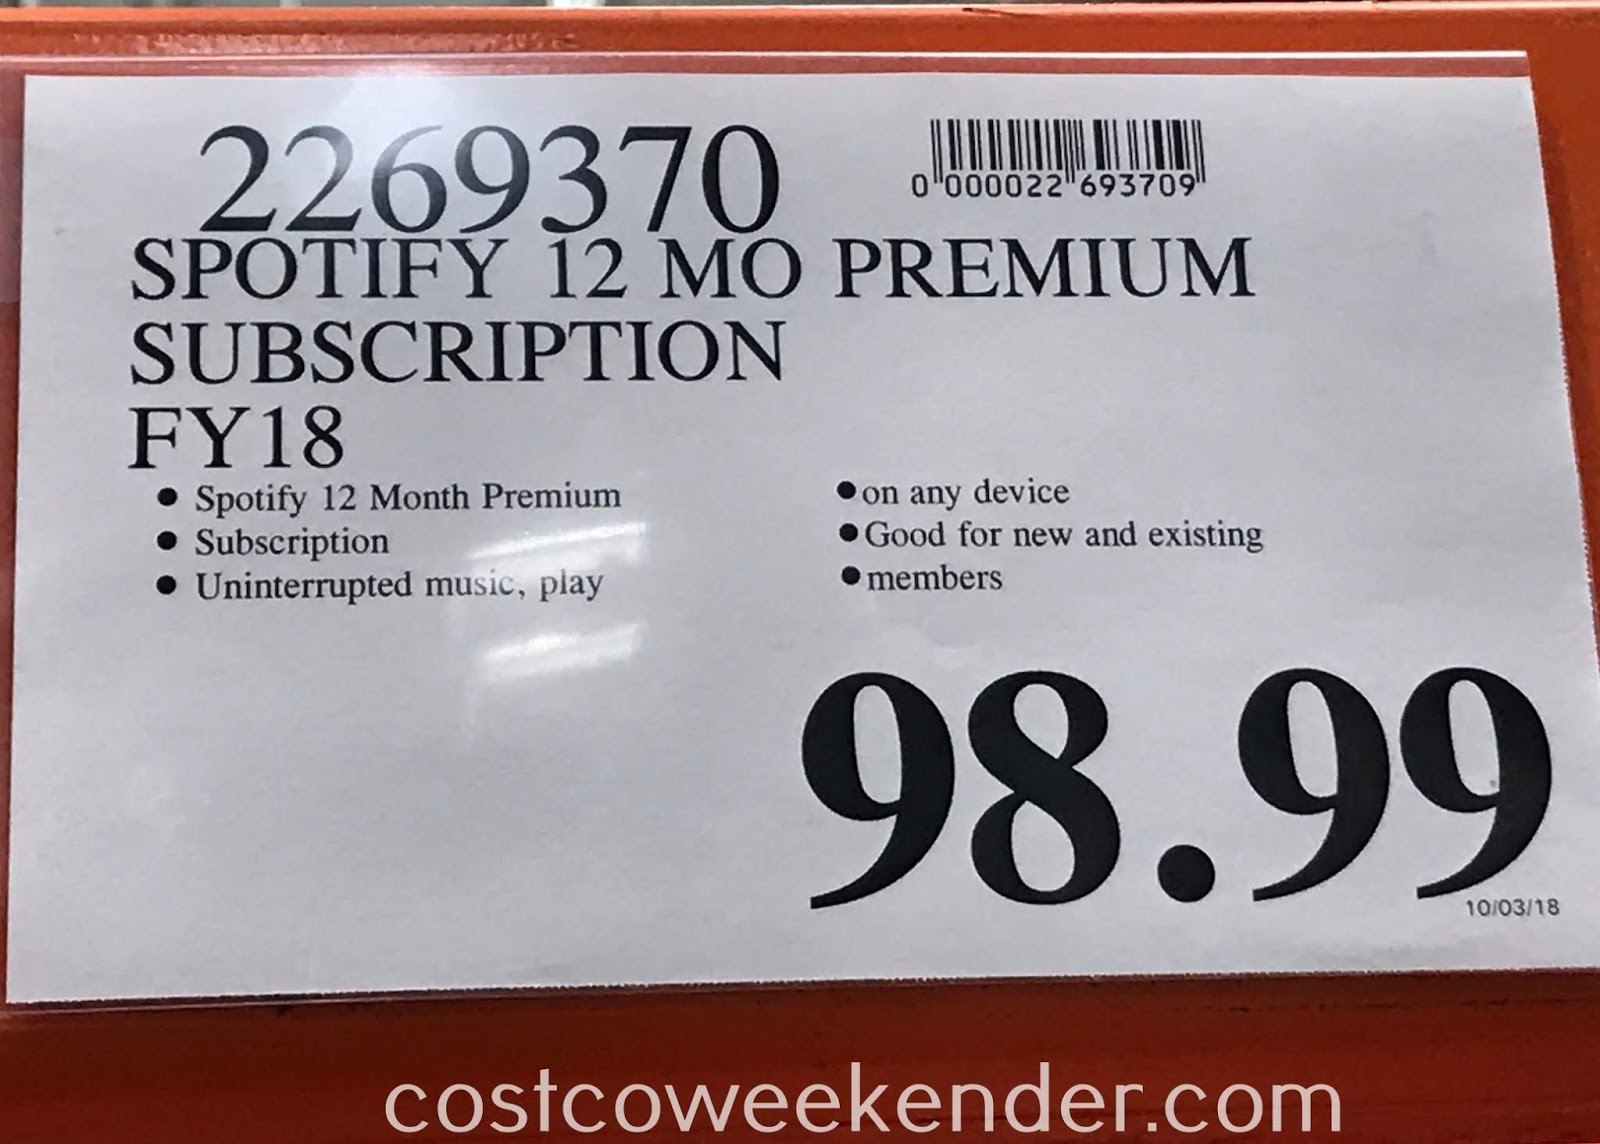 Deal for 12 months of Spotify Premium for 10 months at Costco